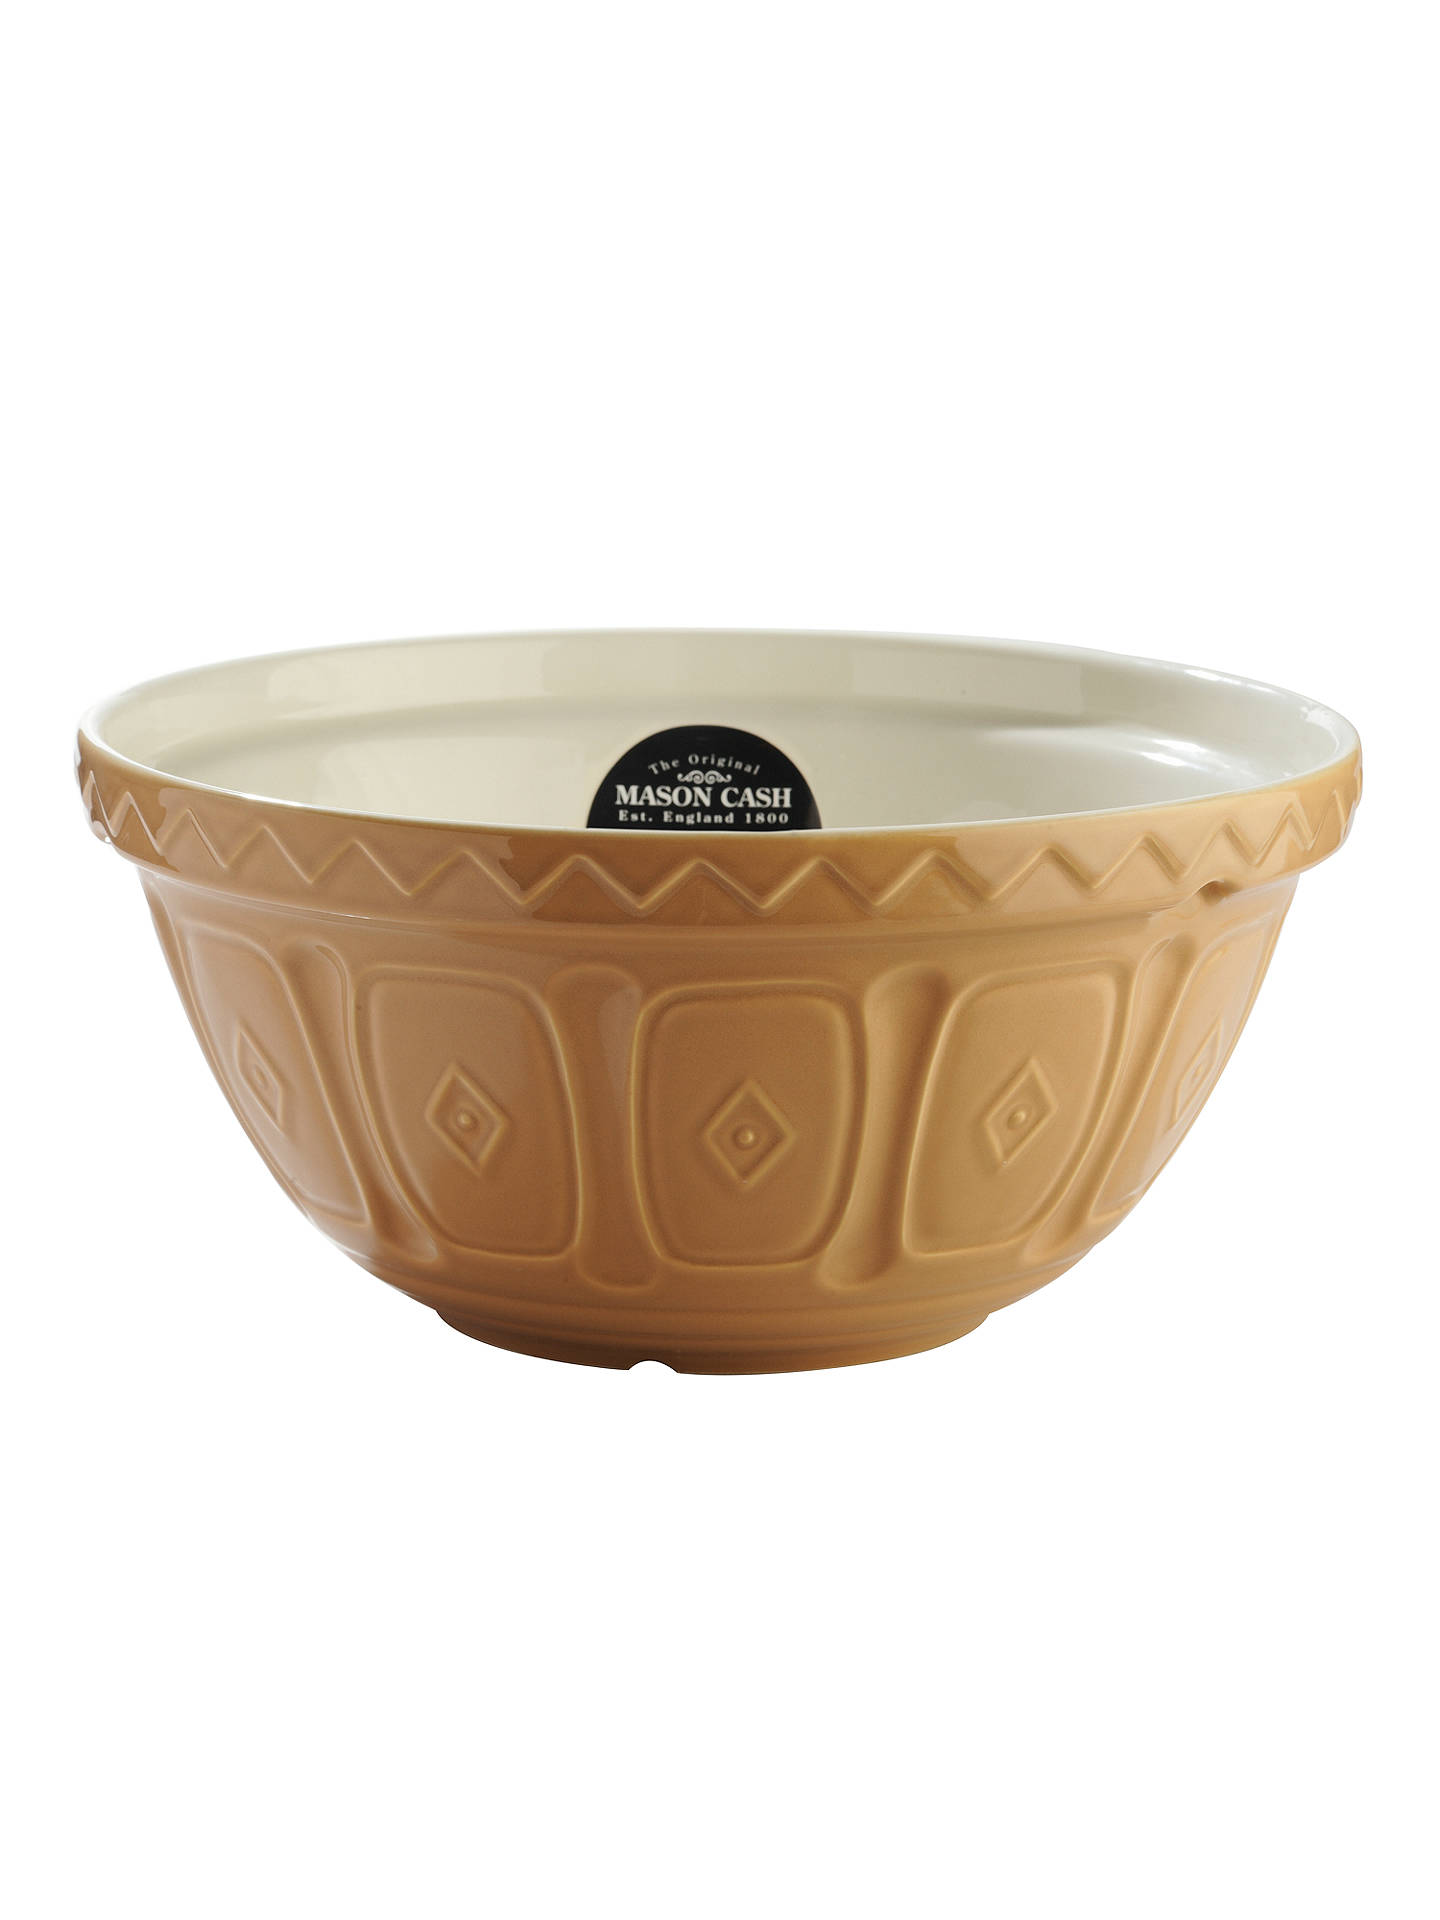 BuyMason Cash Ceramic Mixing Bowl, 4.3L Online at johnlewis.com